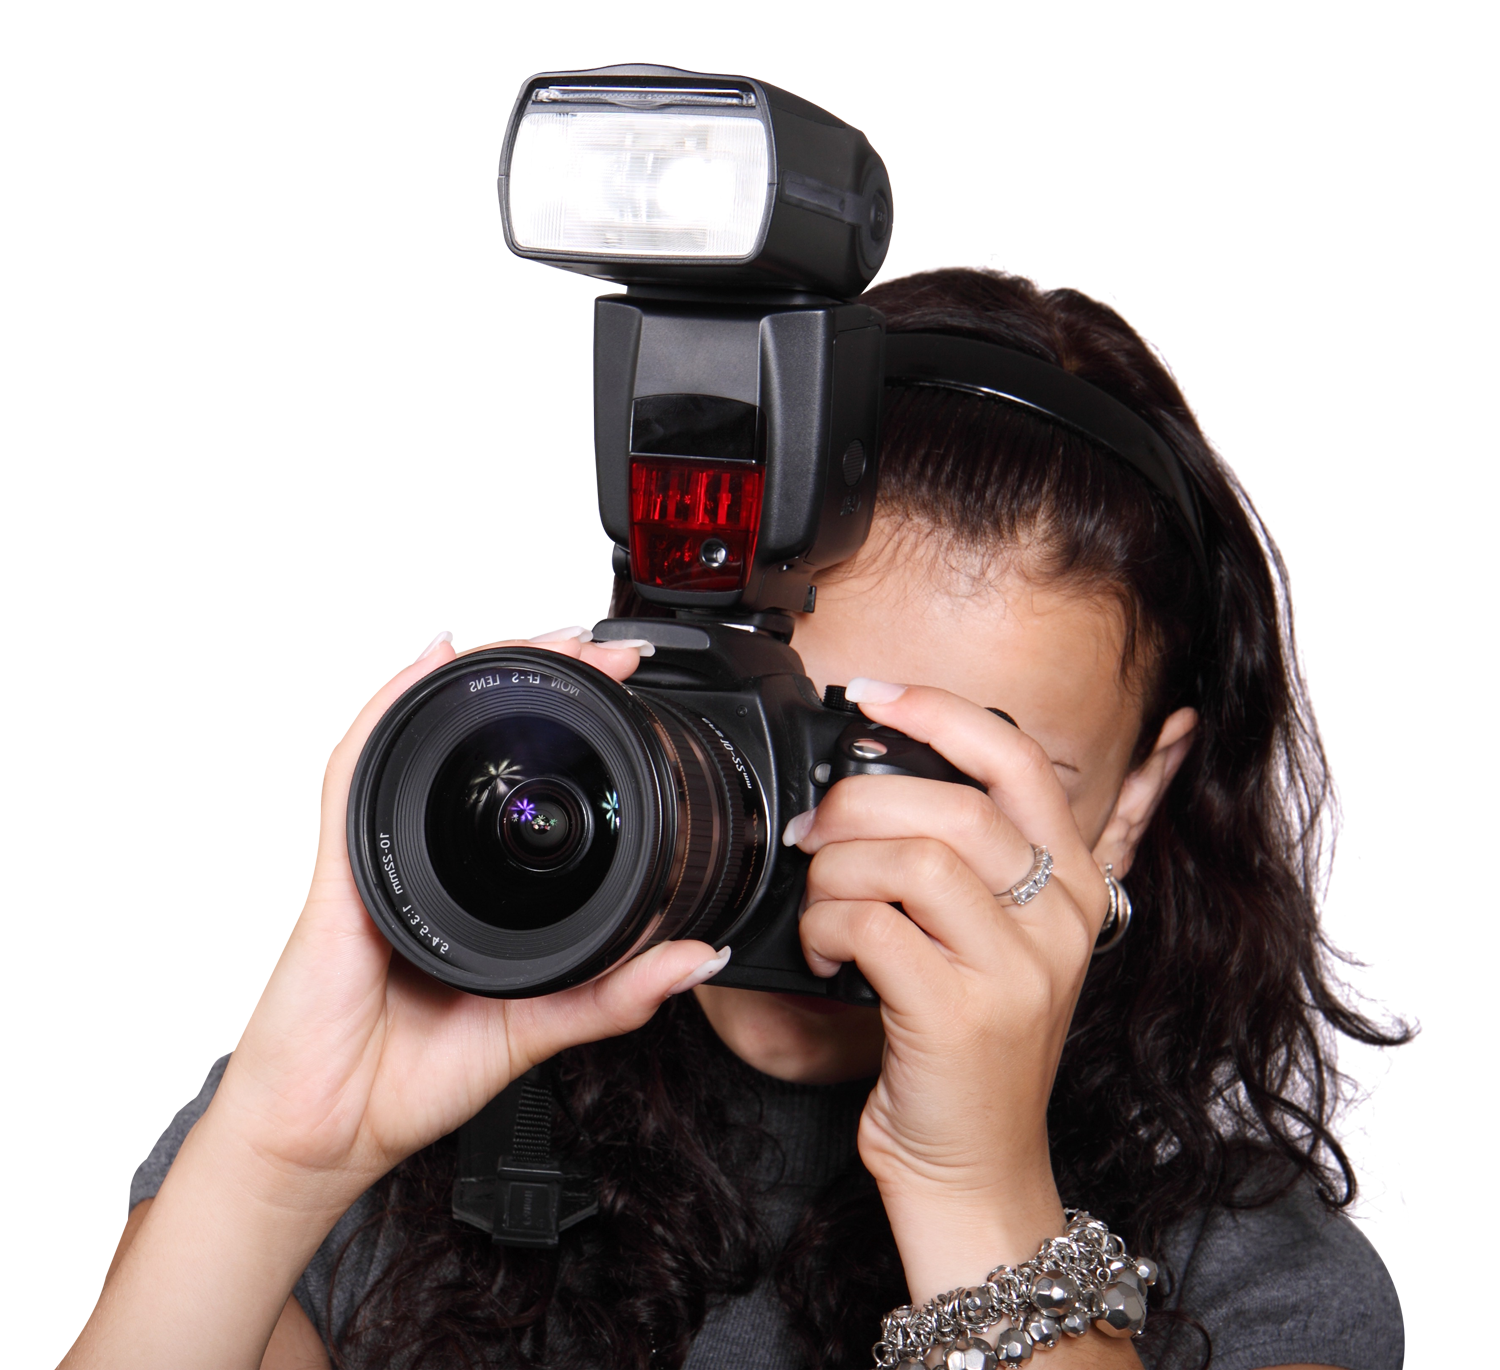 Woman Taking Photo with a Digital Camera PNG Image.